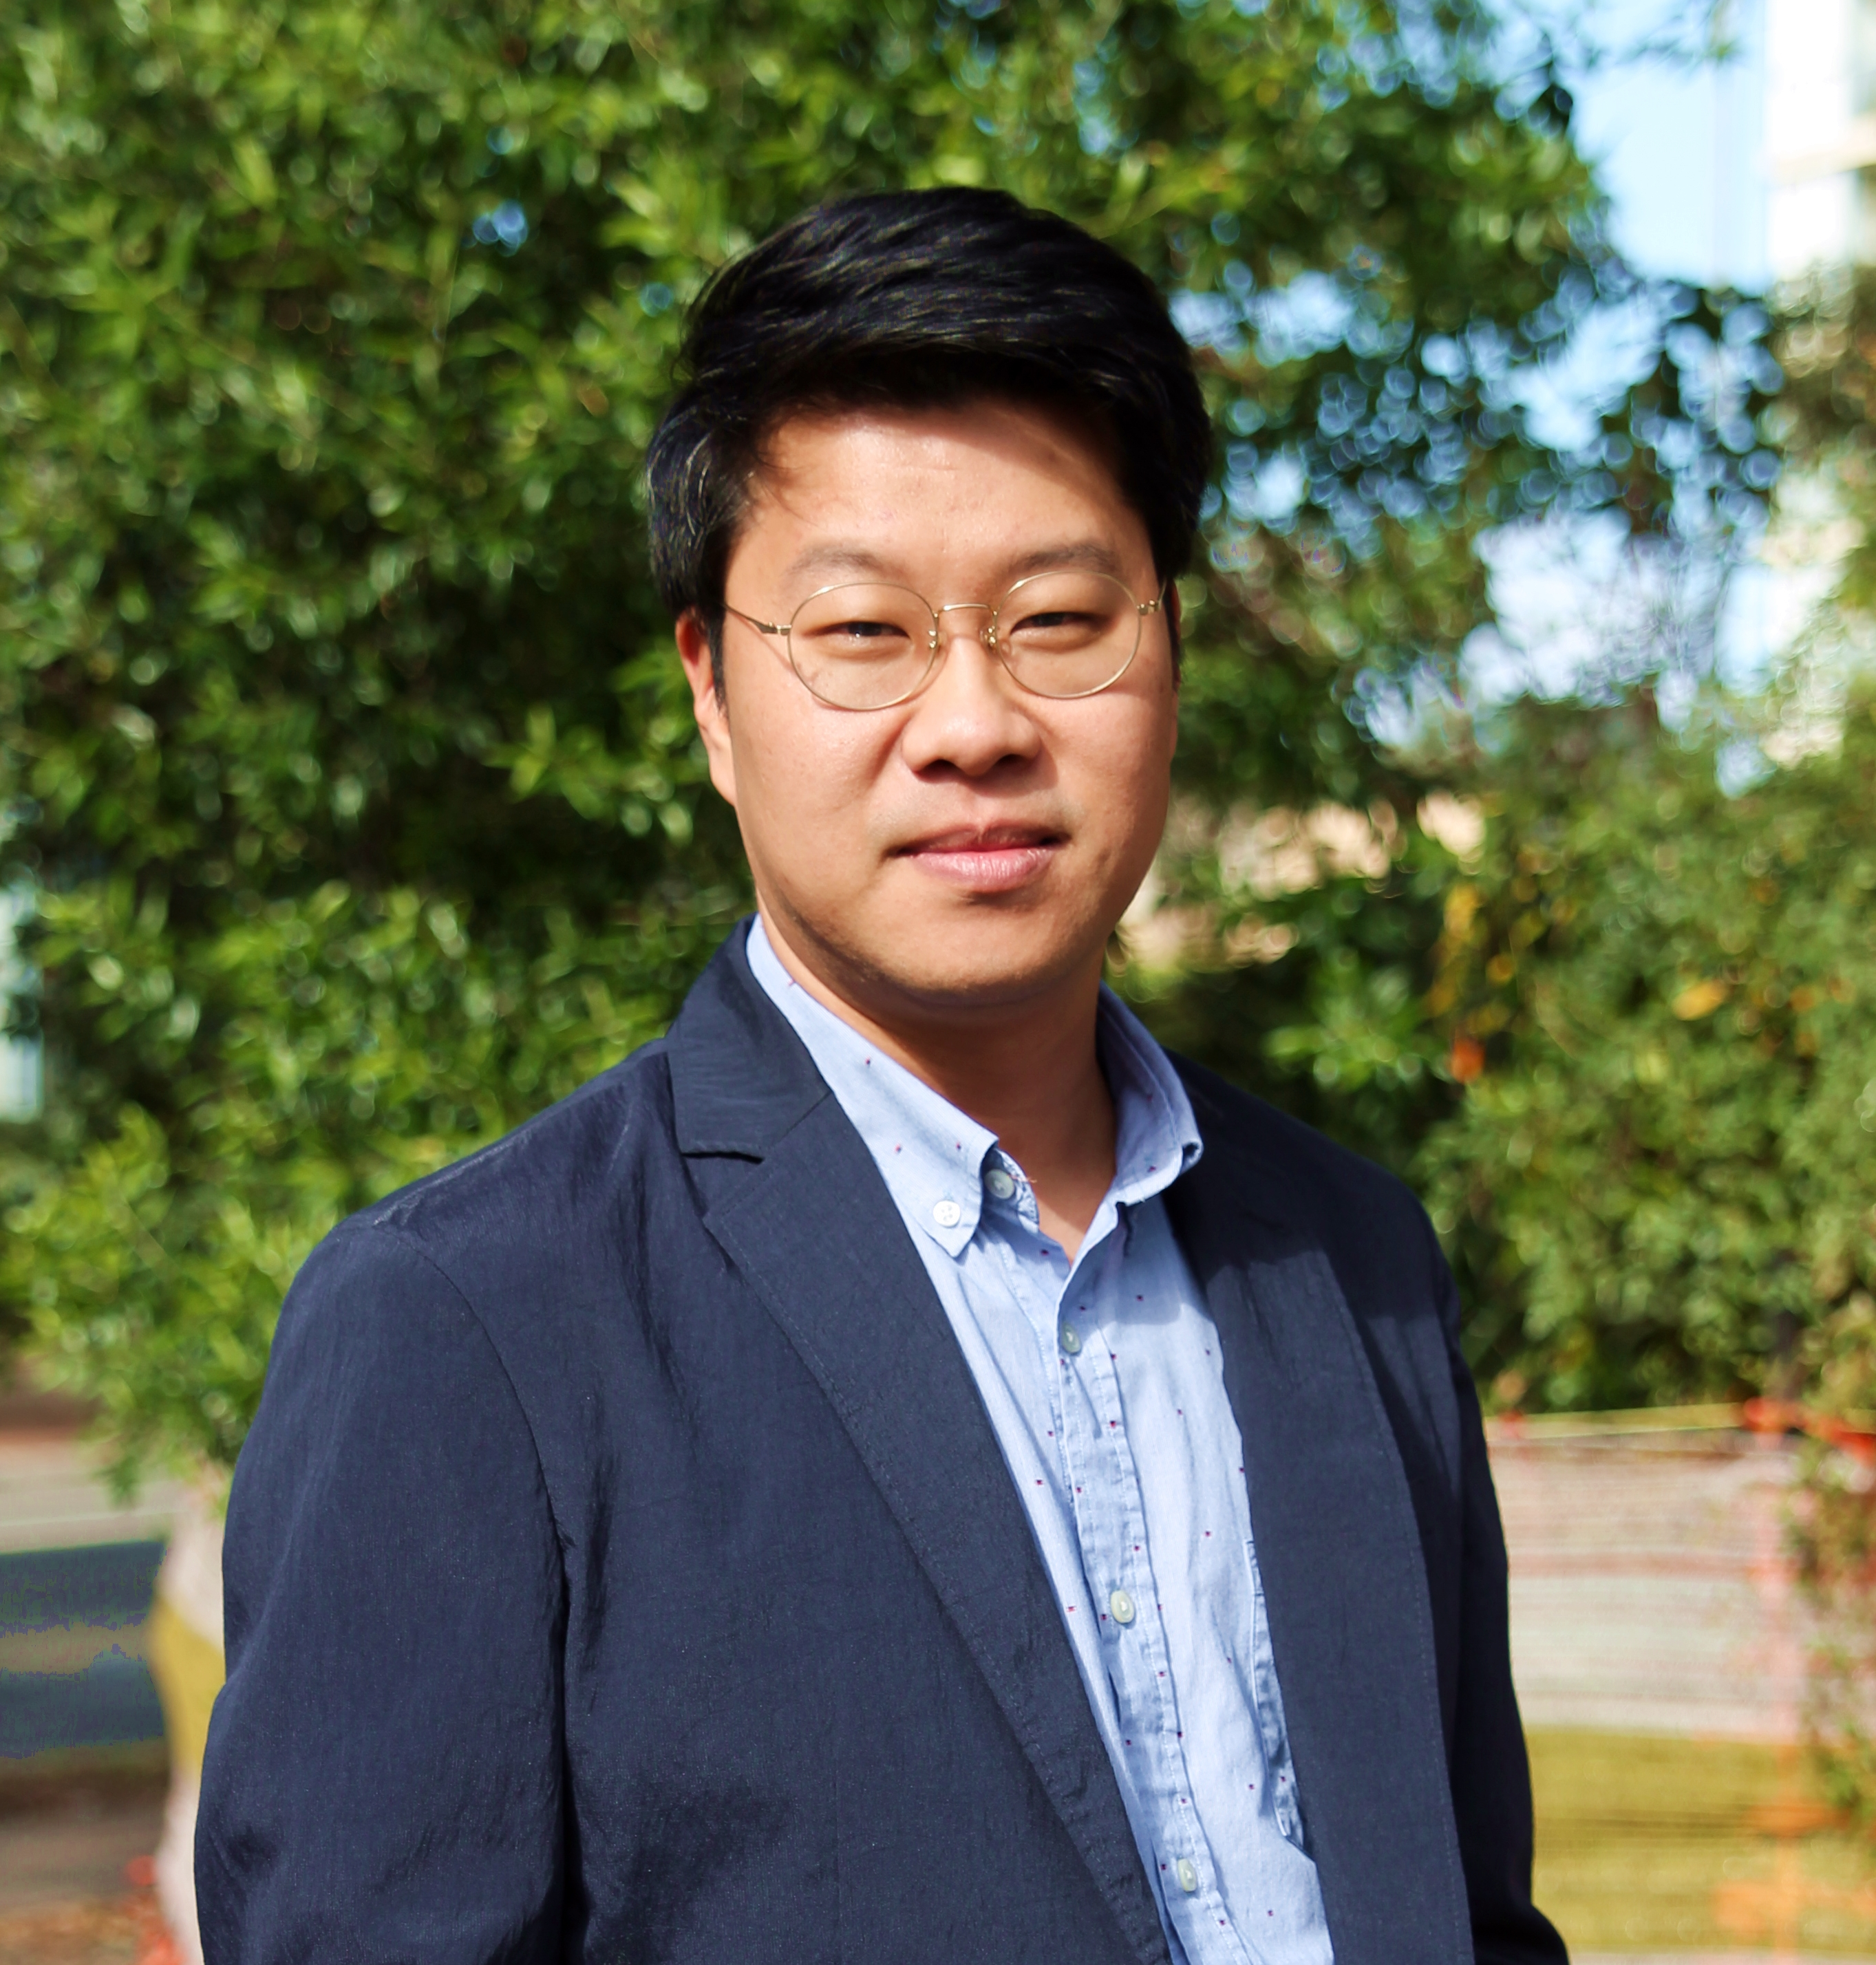 Dr. Dong-Hoon Lee